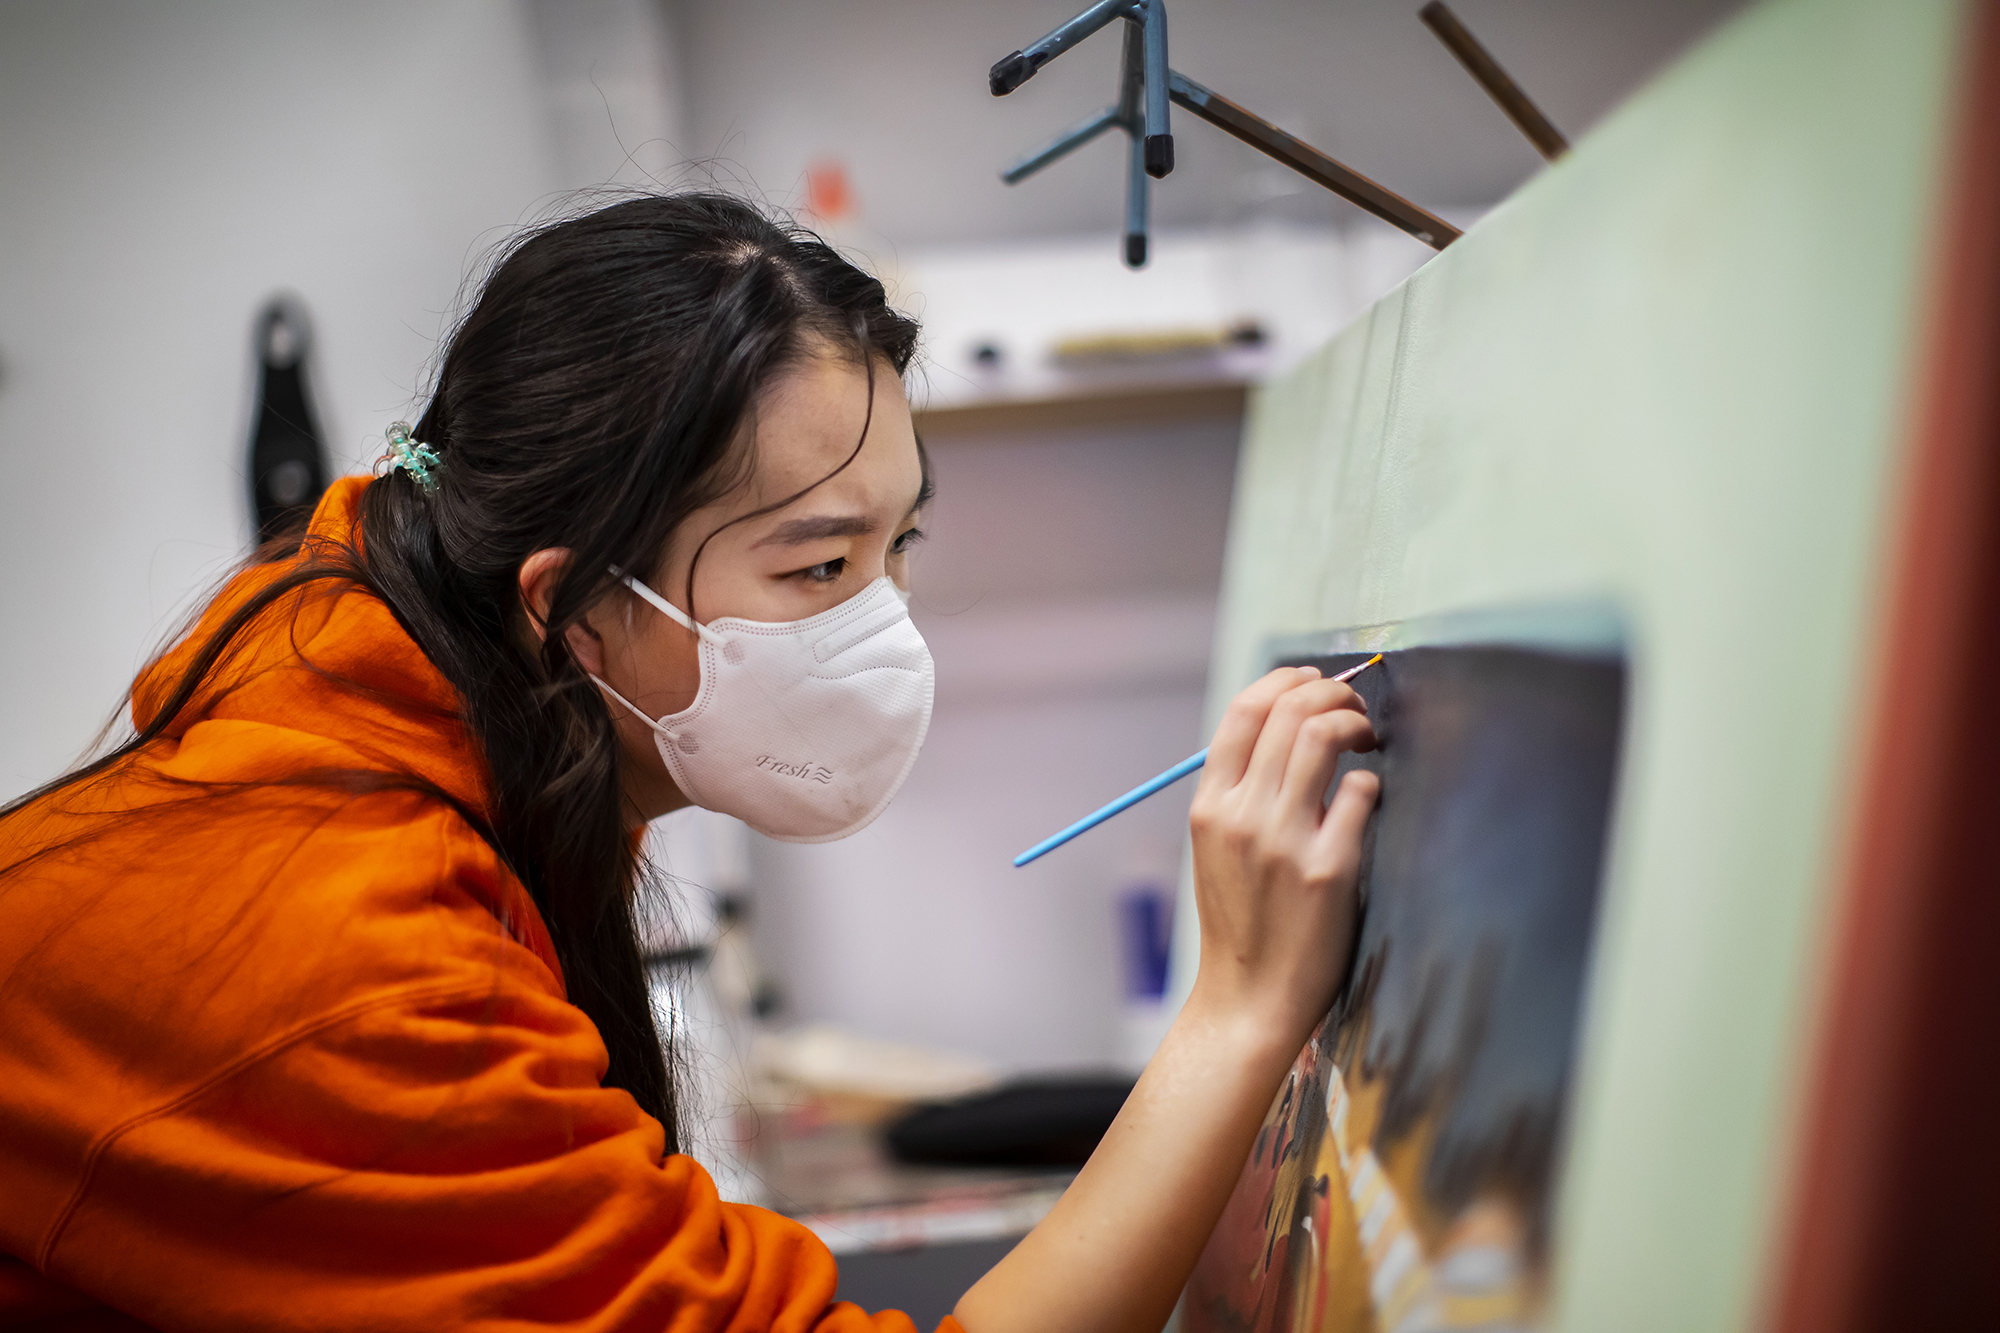 Kay (Seohyung) Lee, wearing a face mask, paints on a canvas in her studio.